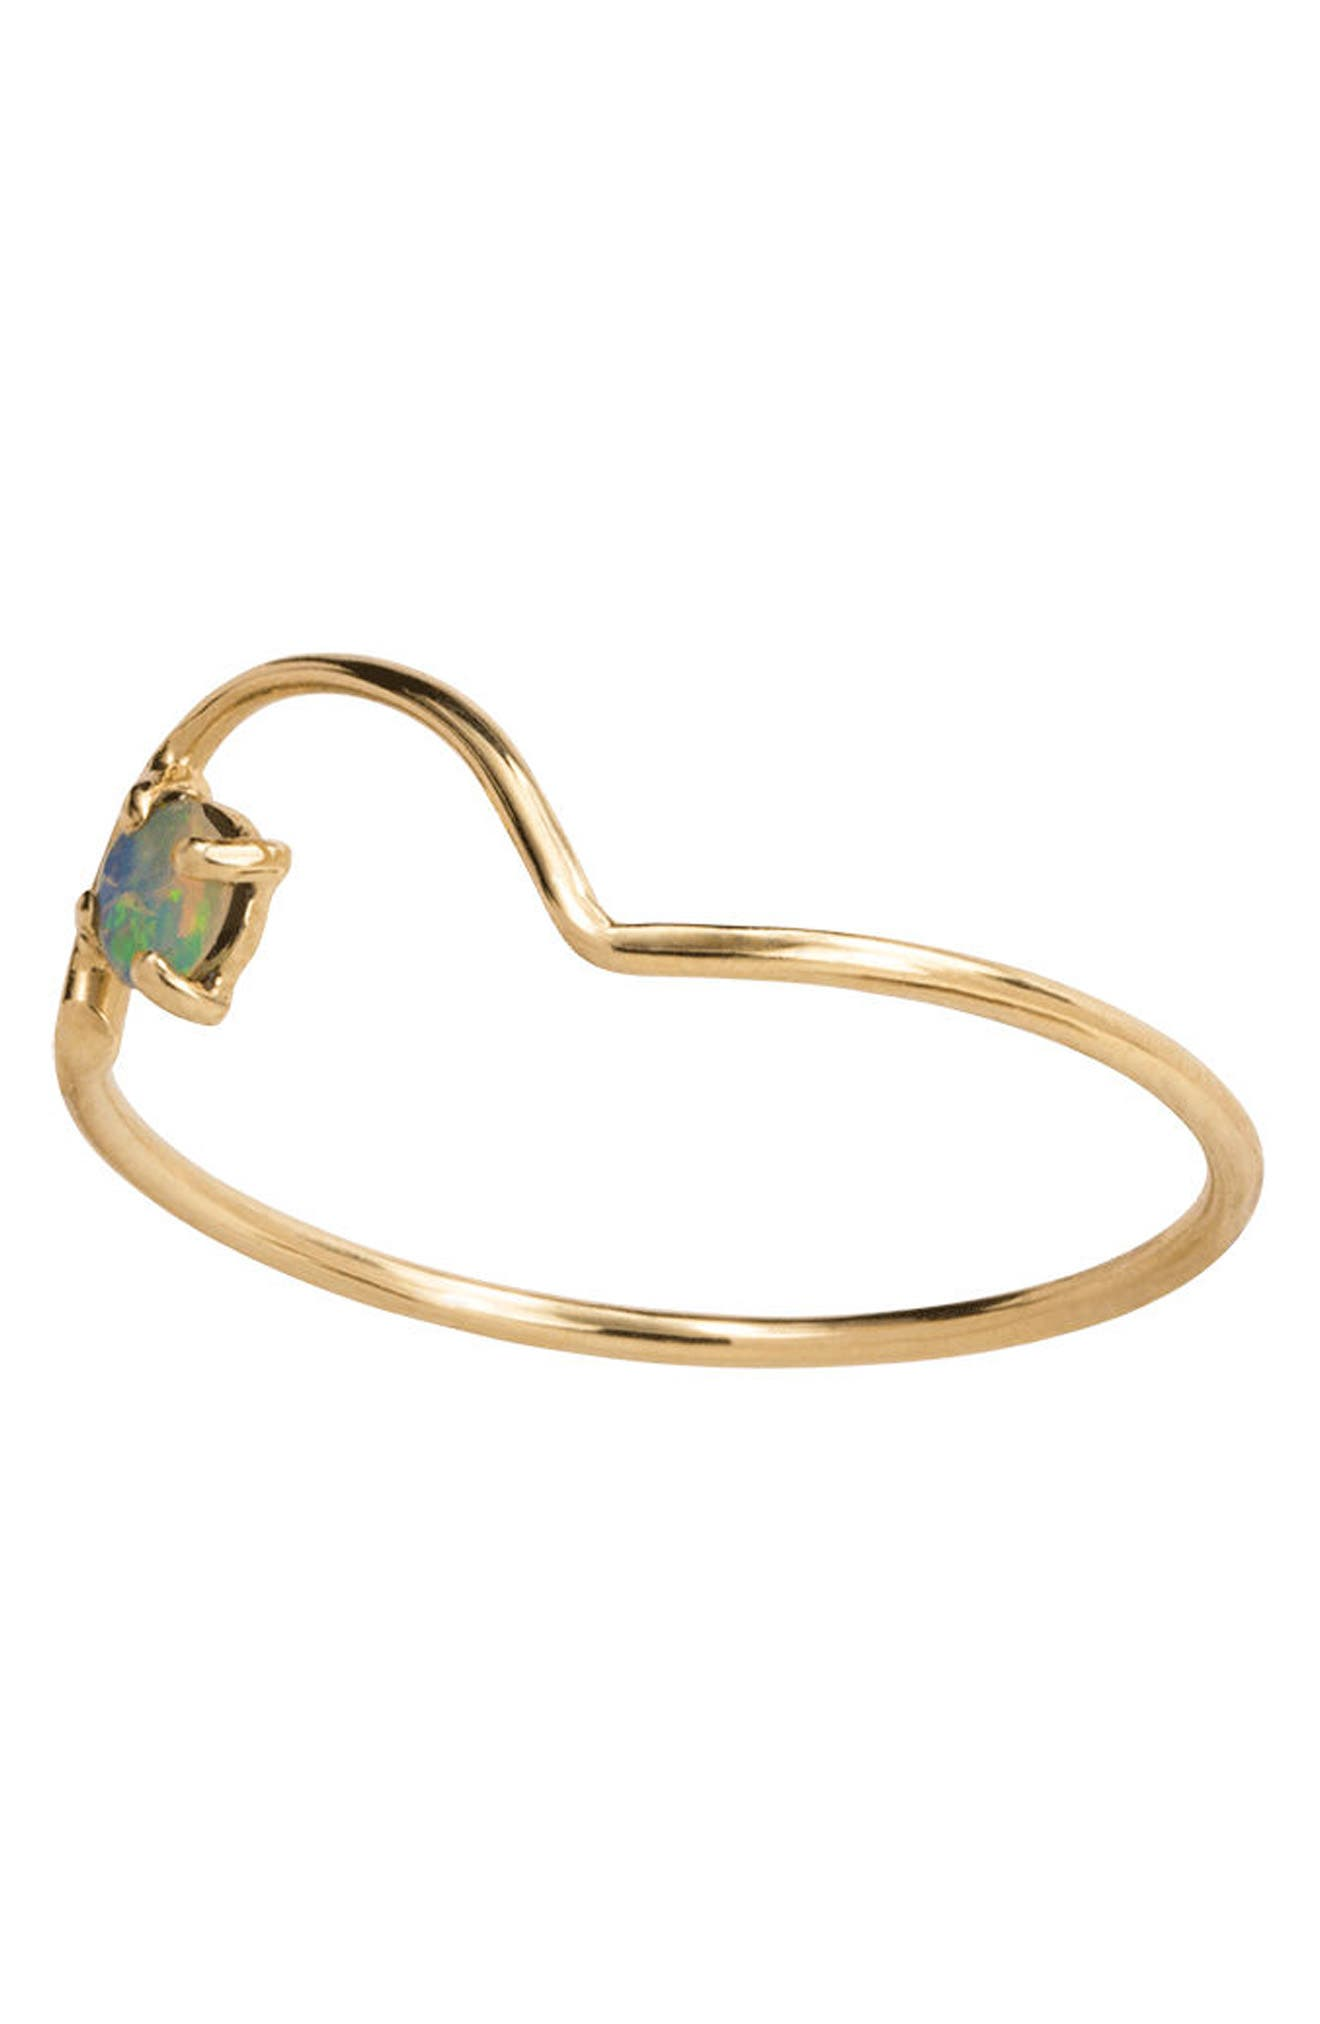 Offset Opal Arc Ring,                             Alternate thumbnail 2, color,                             OPAL/ GOLD